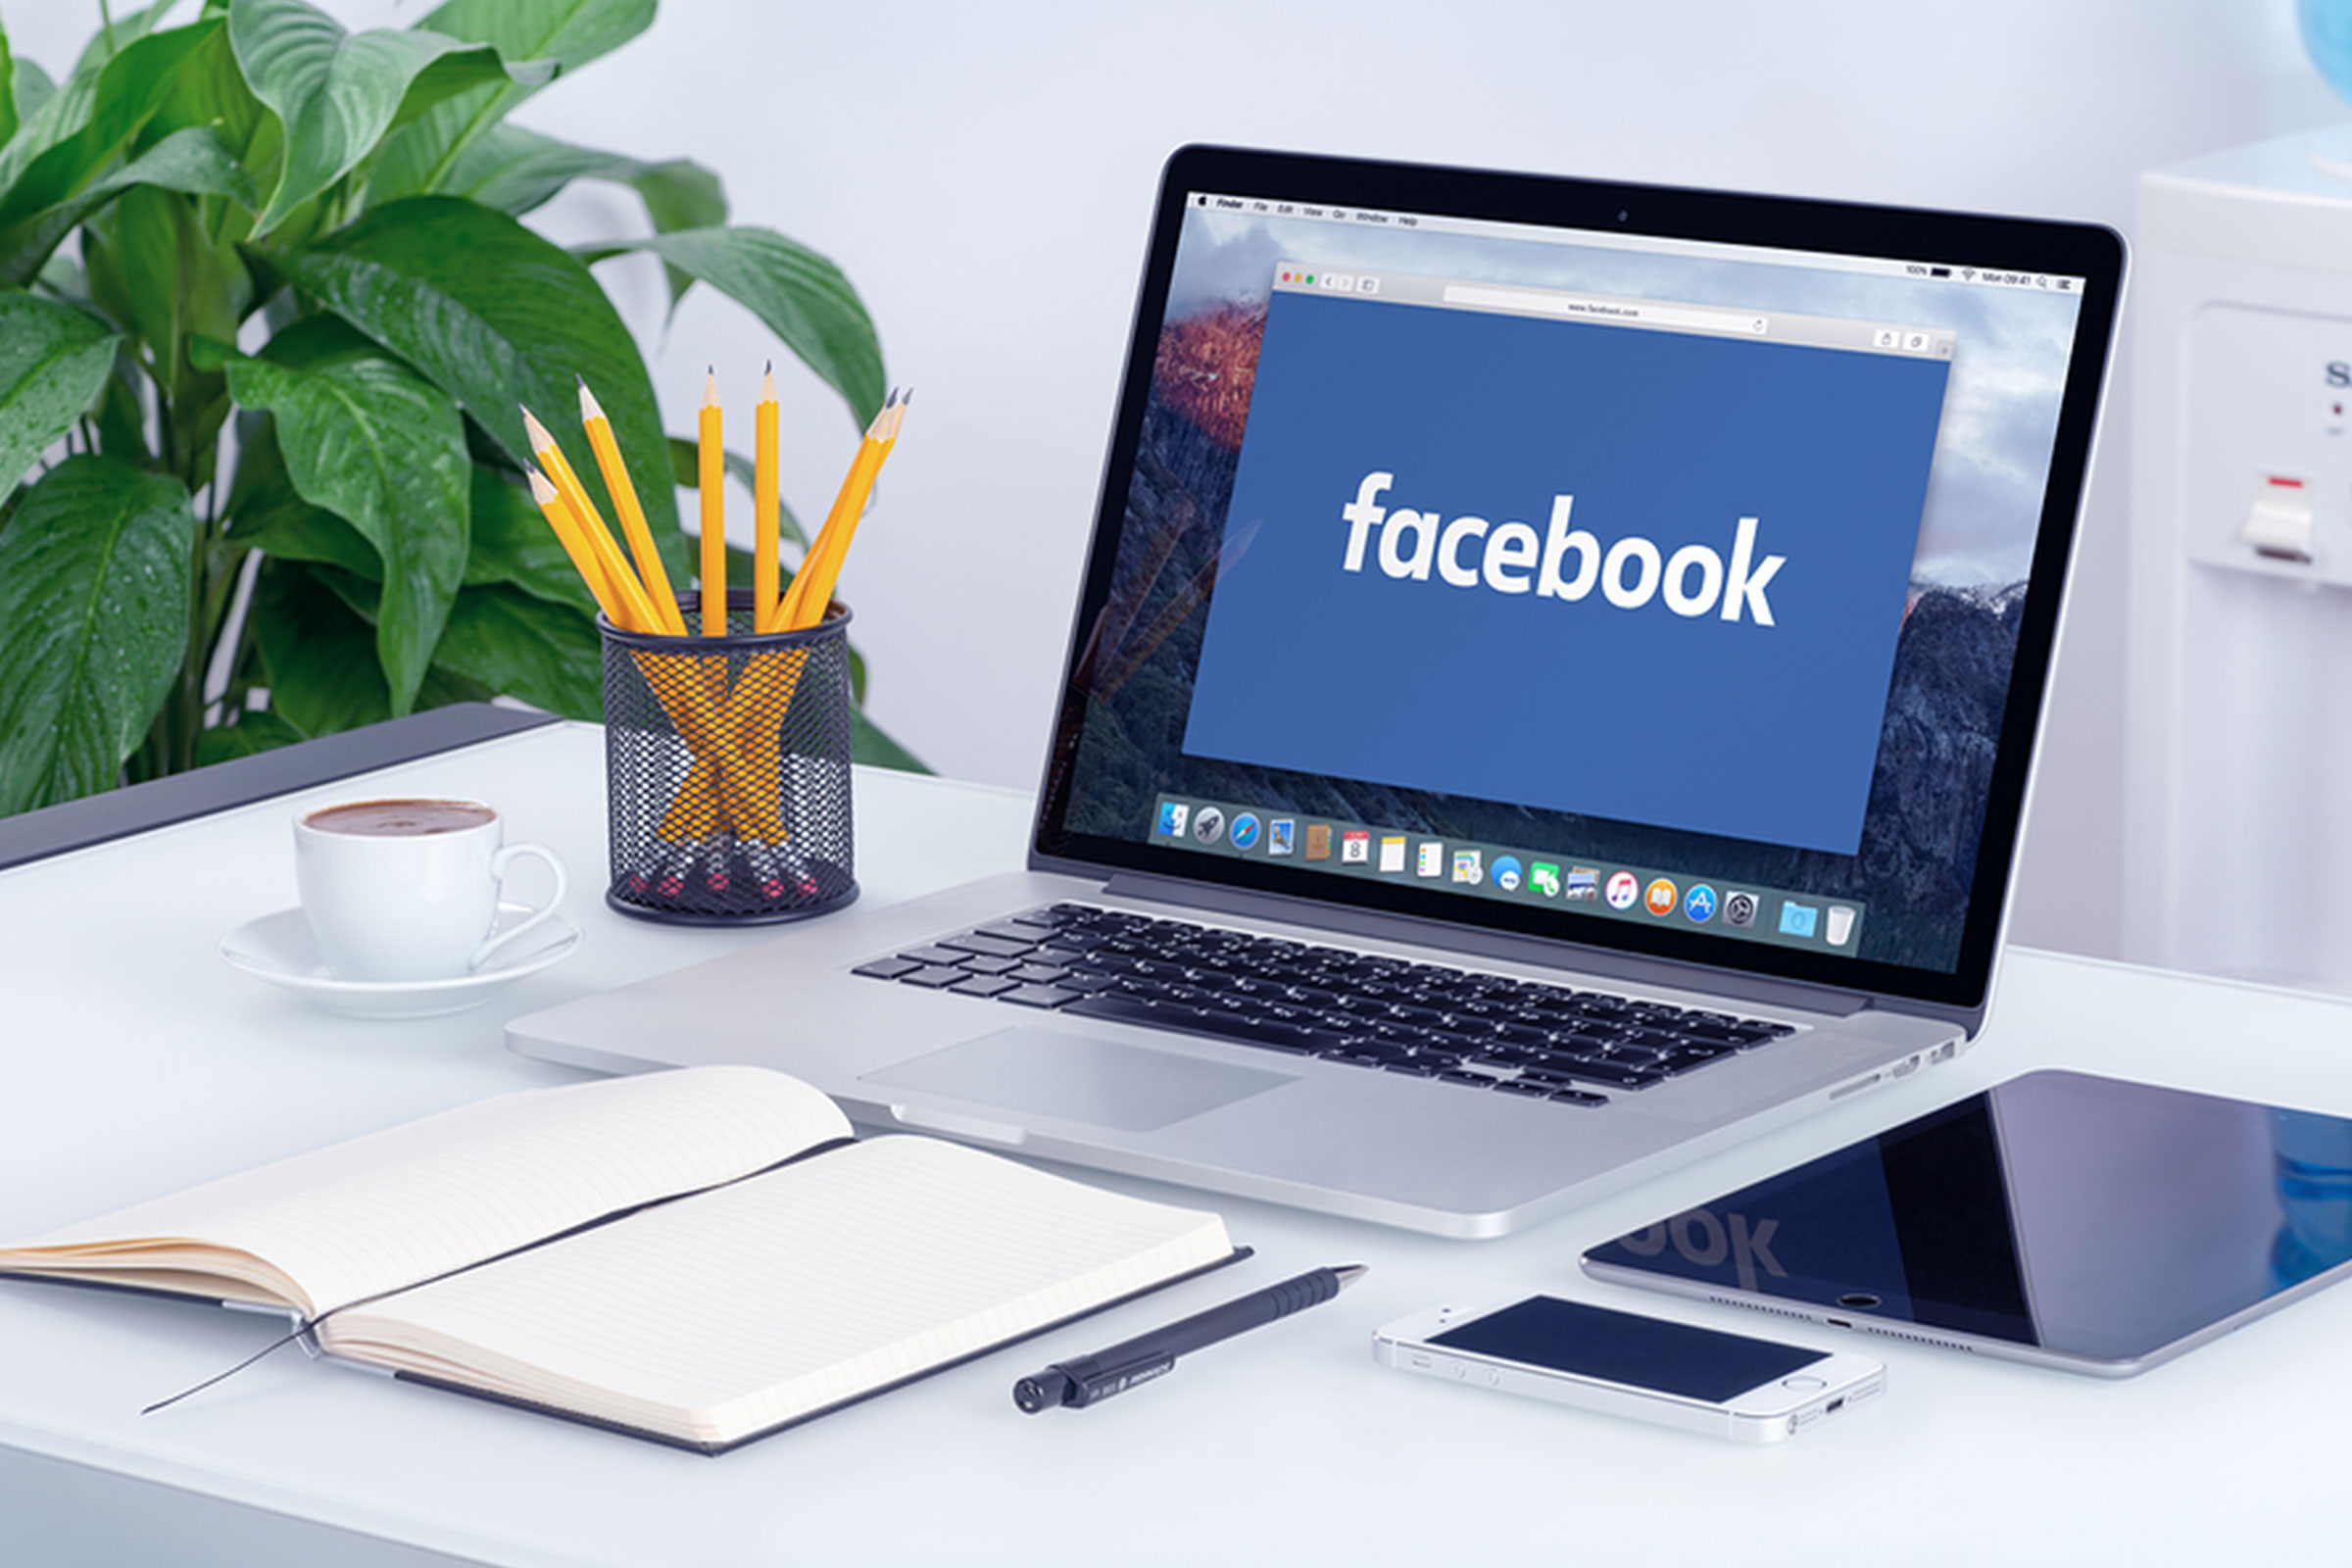 how to find your business page on facebook - How to Find Your Business Page on Facebook